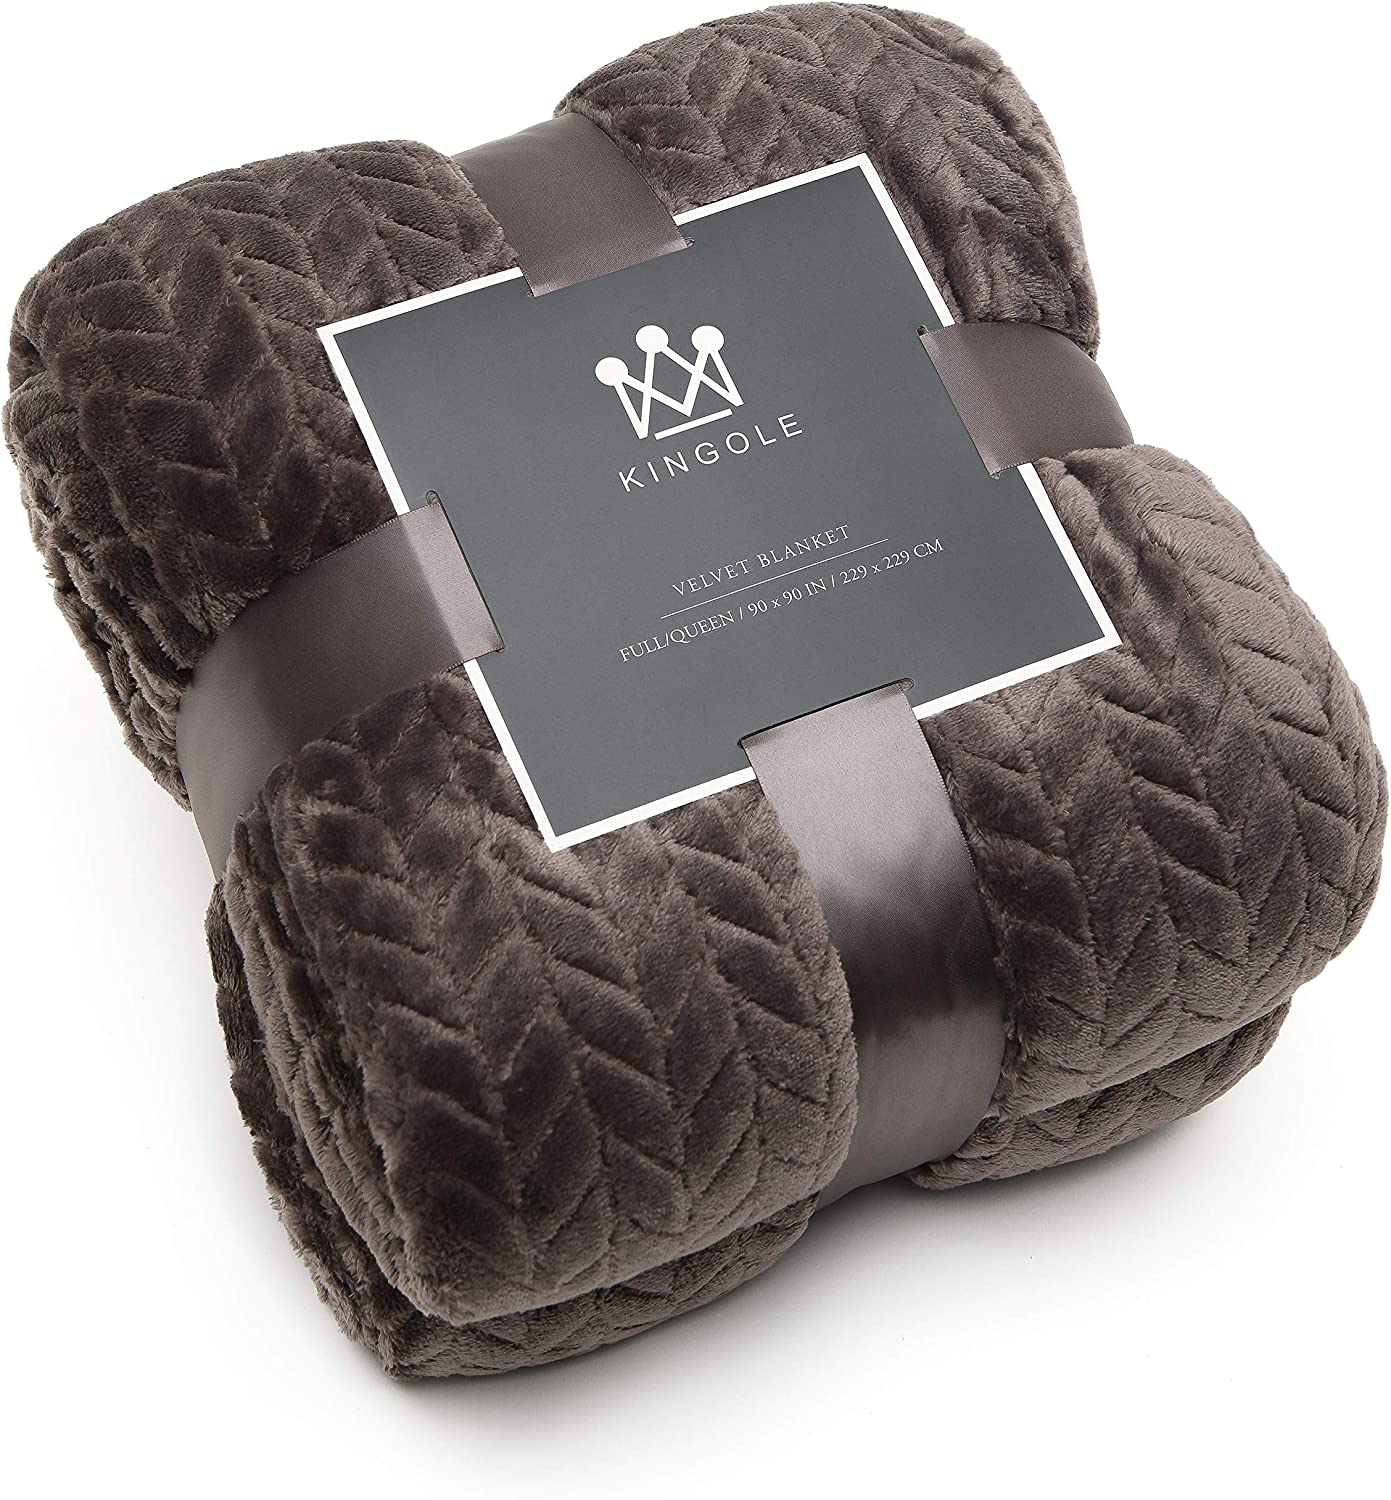 Kingole Flannel Fleece Luxury Throw Jacquard Weave Blanket, Charcoal Grey Queen Size Leaf Pattern Cozy Couch/Bed Super Soft and Warm Plush Microfiber 350GSM (90 x 90 inches)